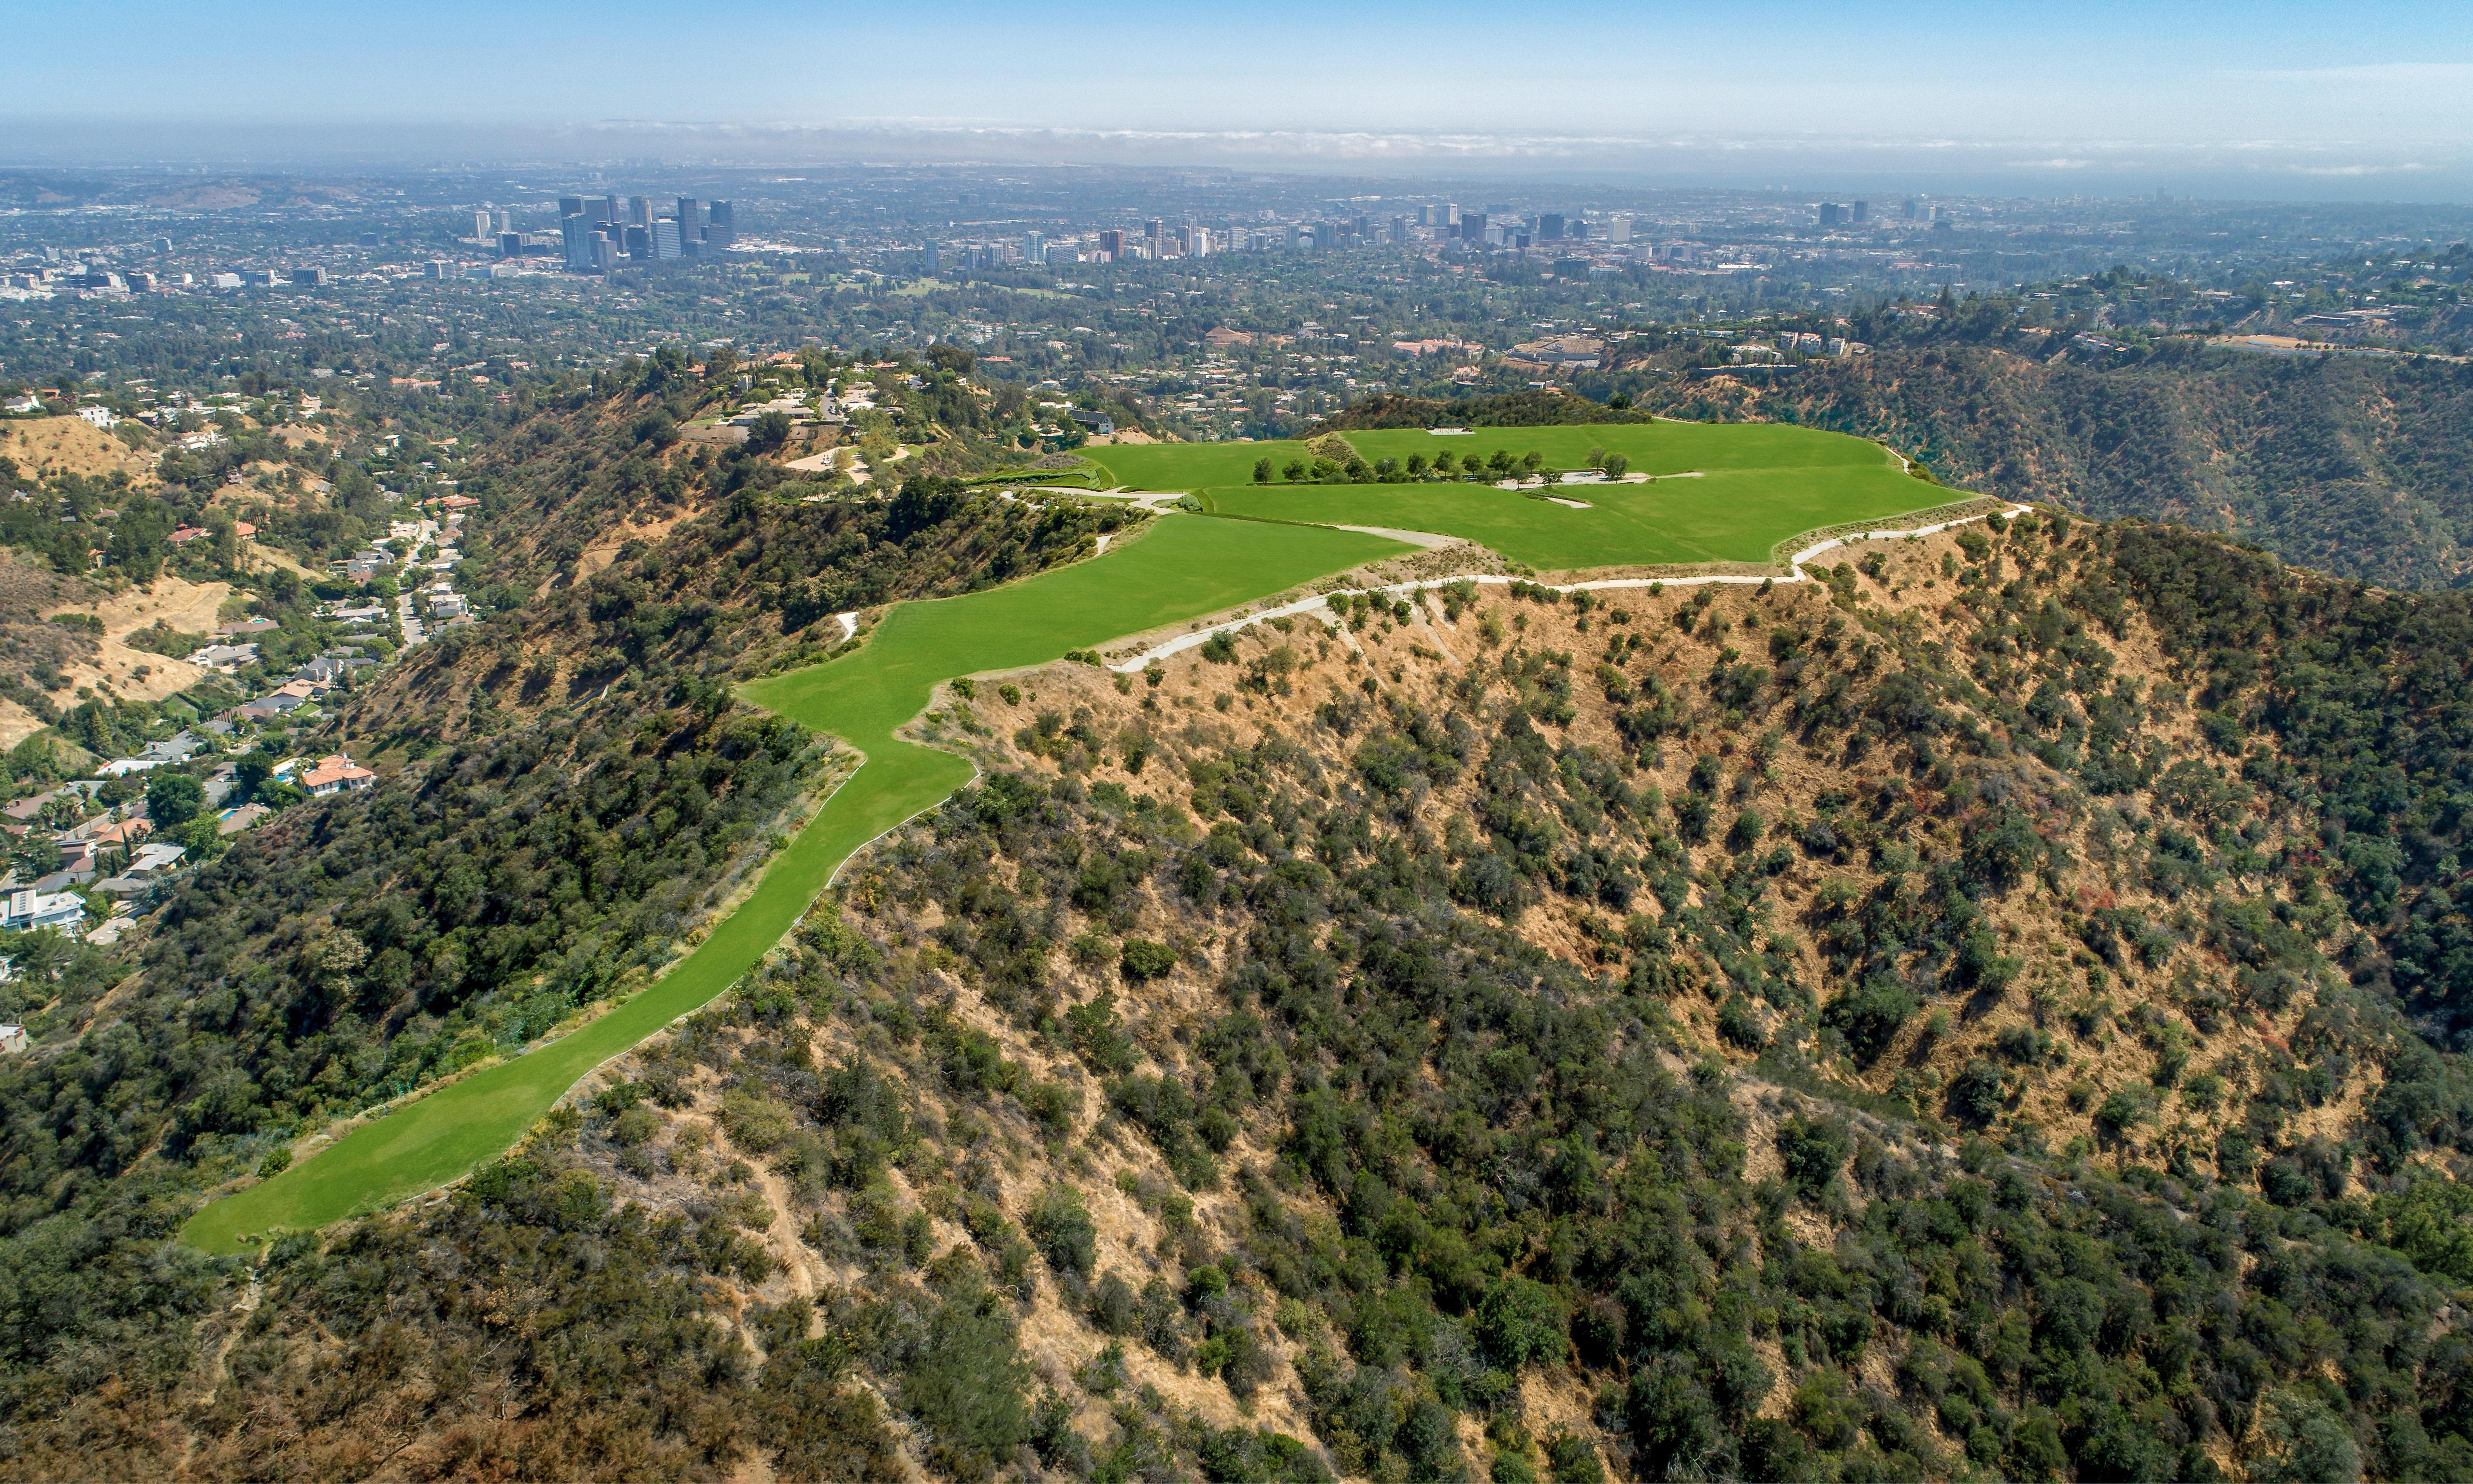 No Hollywood ending: Los Angeles property listed for $1bn sells at $100,000